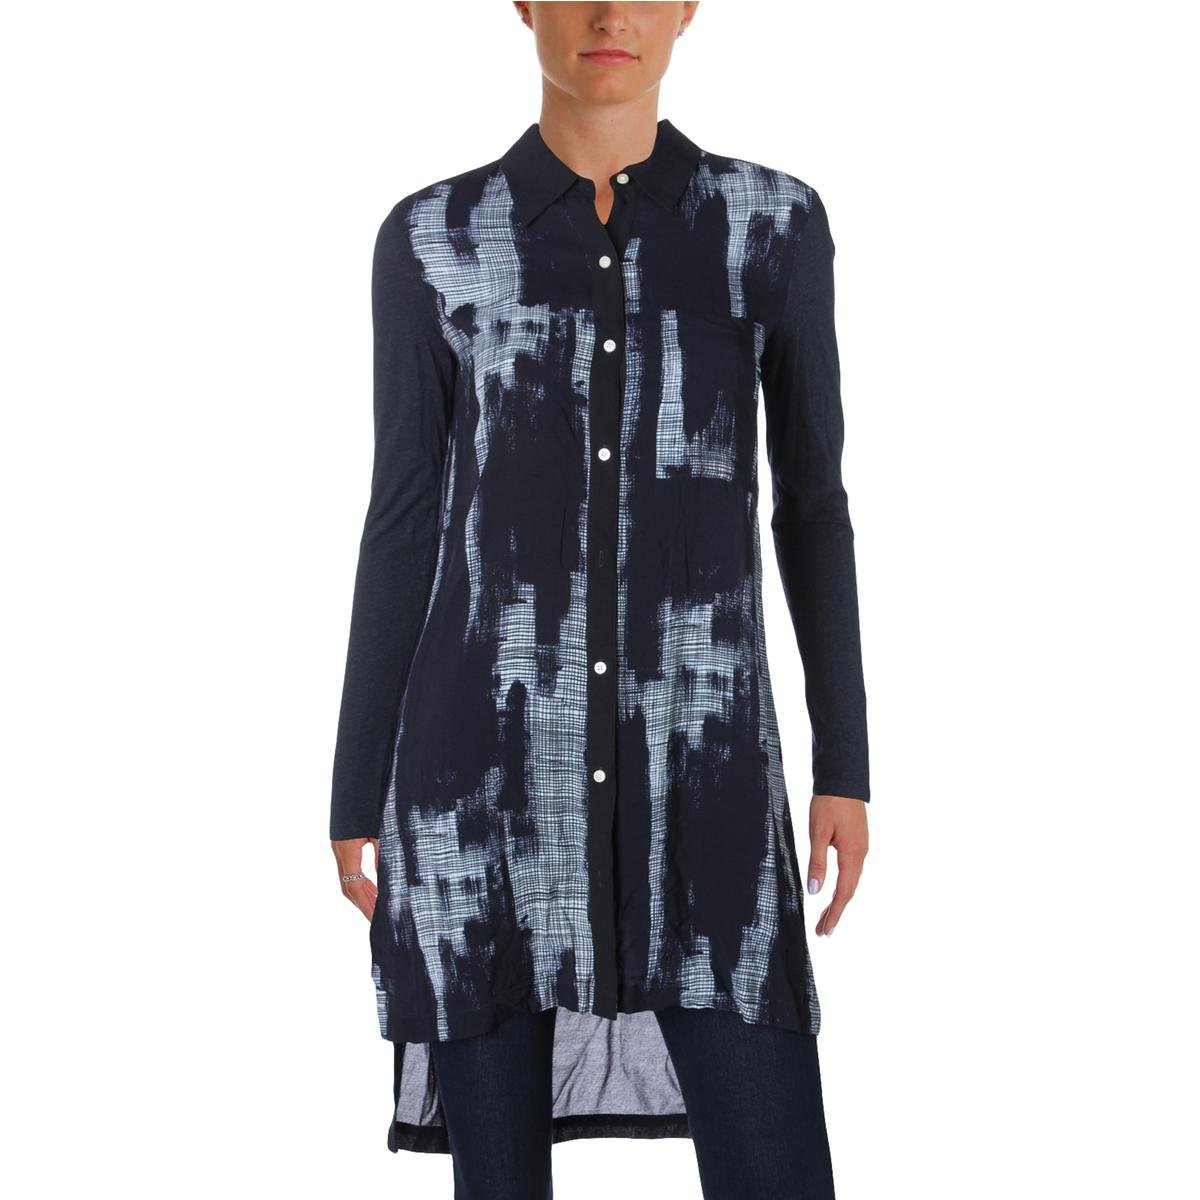 Pure DKNY Womens Printed Long Sleeves Button-Down Top Navy M by DKNY